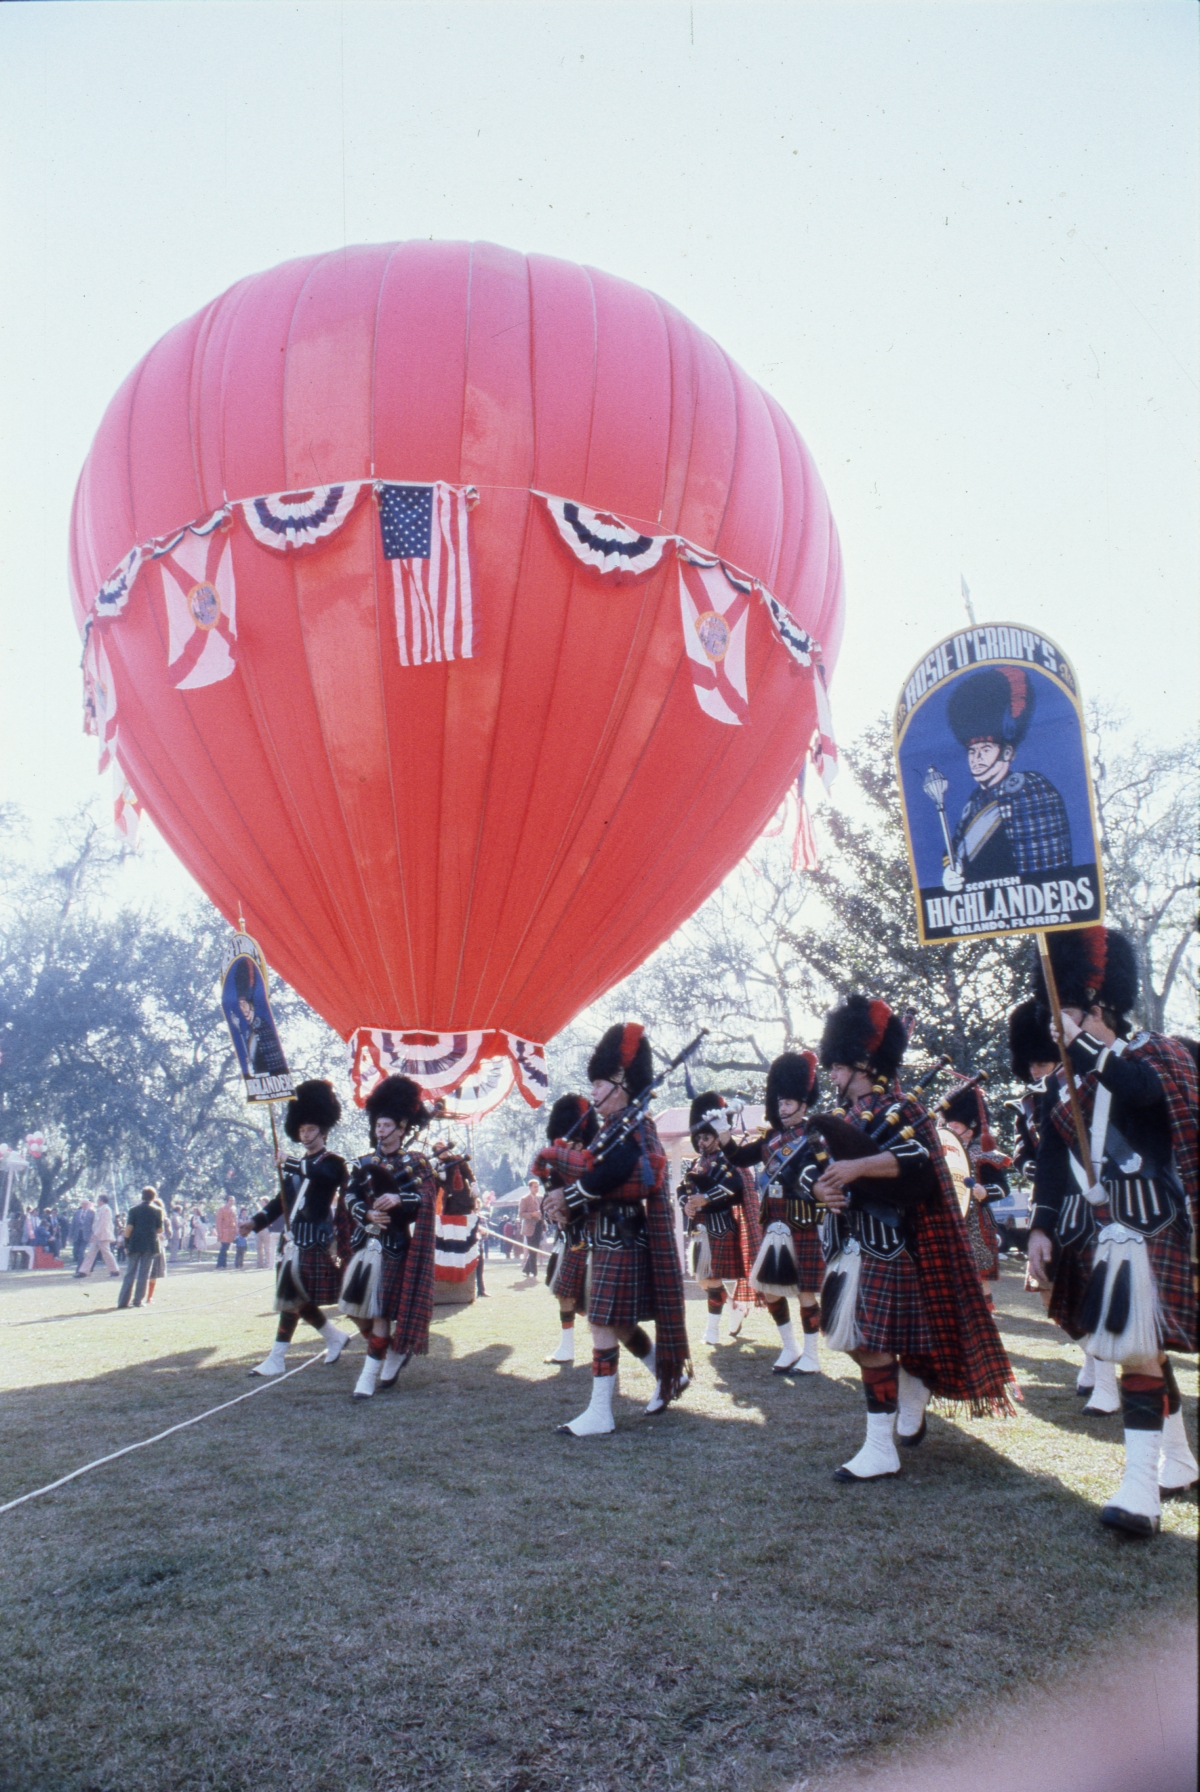 Rosie O'Grady's Scottish Highlanders marching by hot air balloon during Governor Graham's inauguration party.